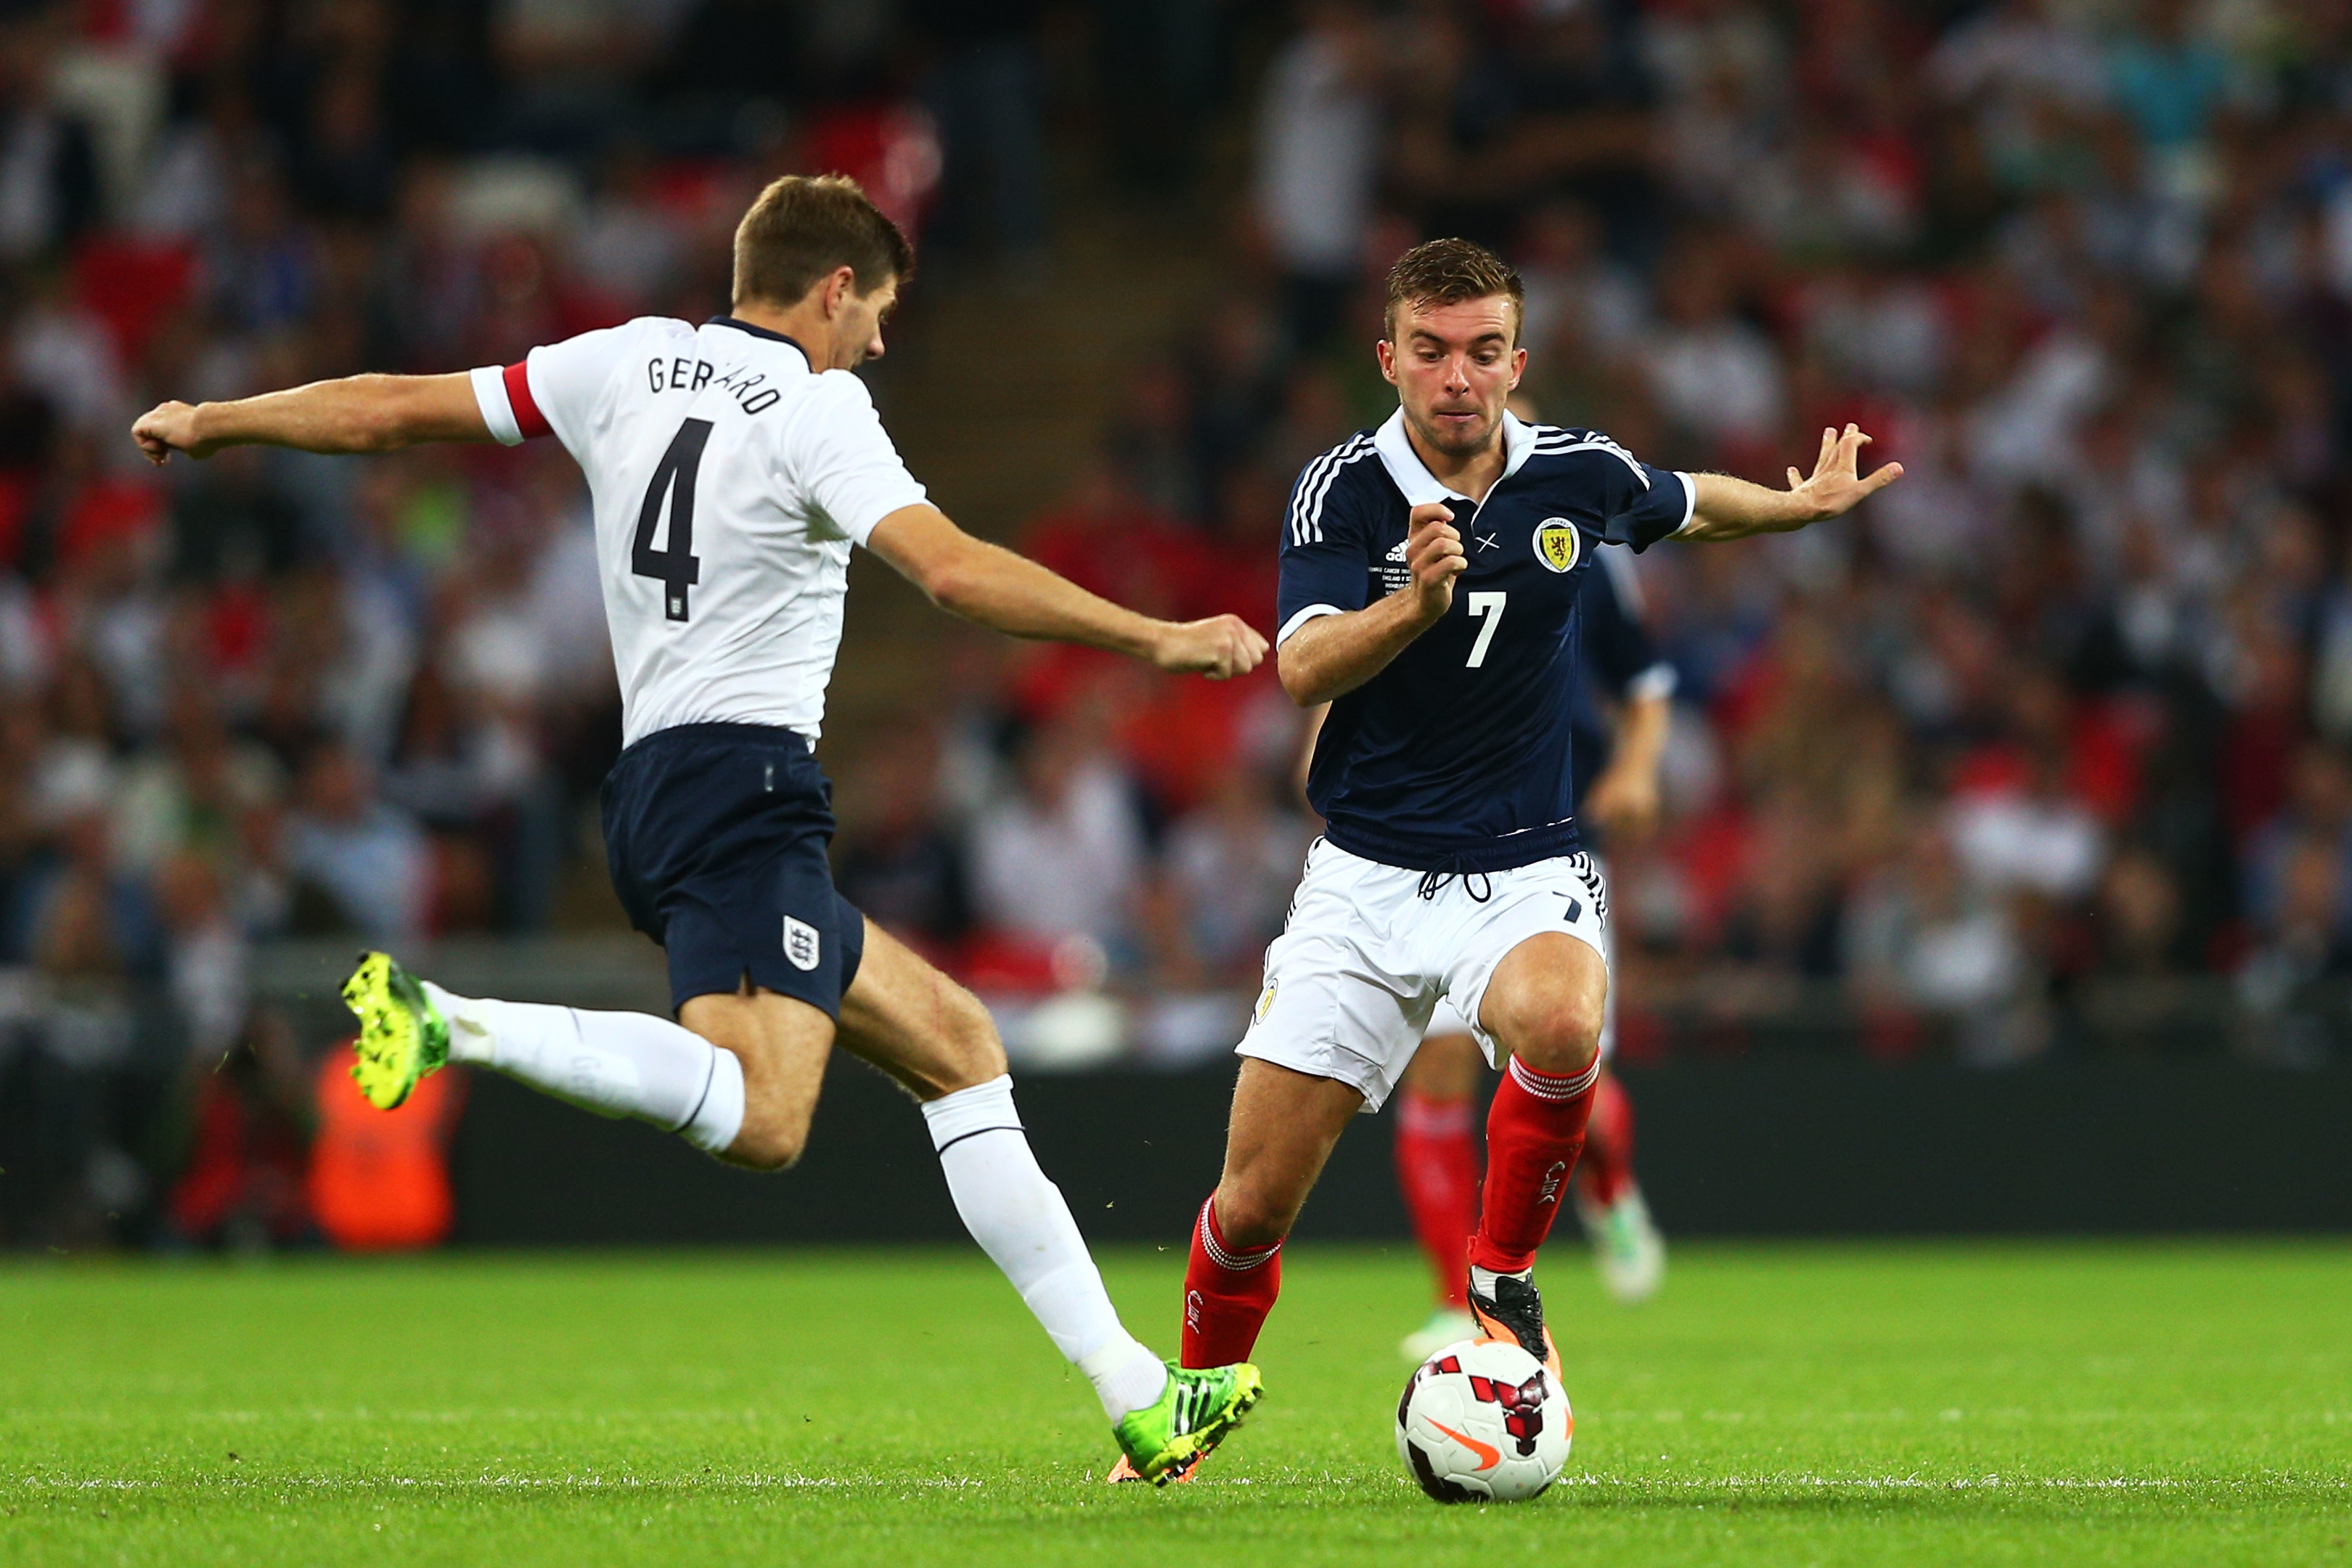 James Morrison in action against England, 2013 (Clive Mason/Getty Images)